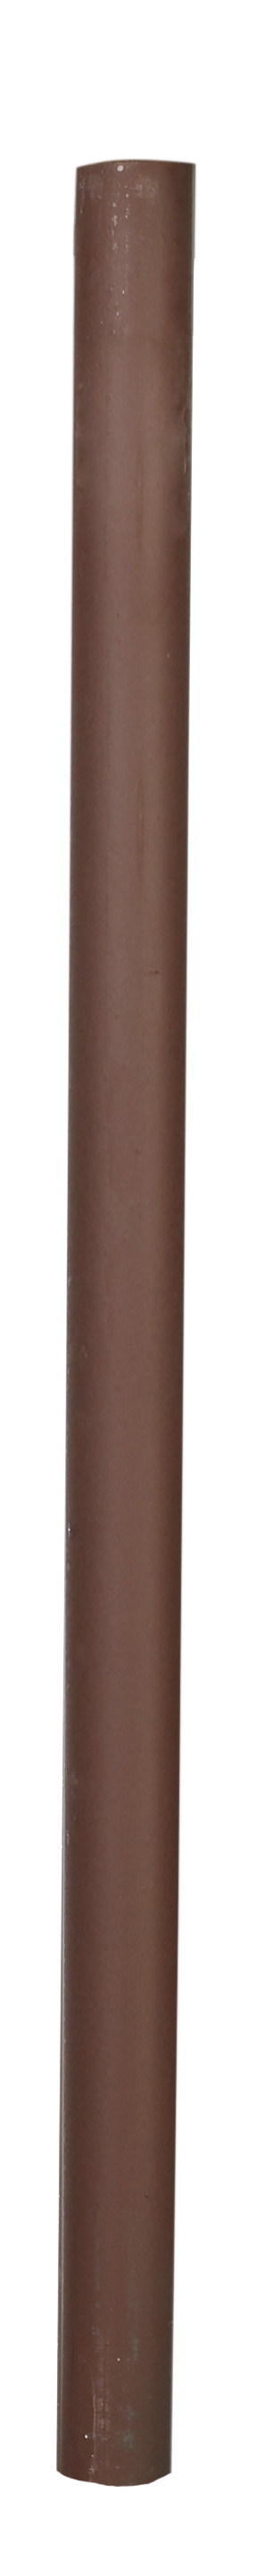 200007-0-0, 4 in Concrete filled Column 8ft 6 in, Mutual Industries